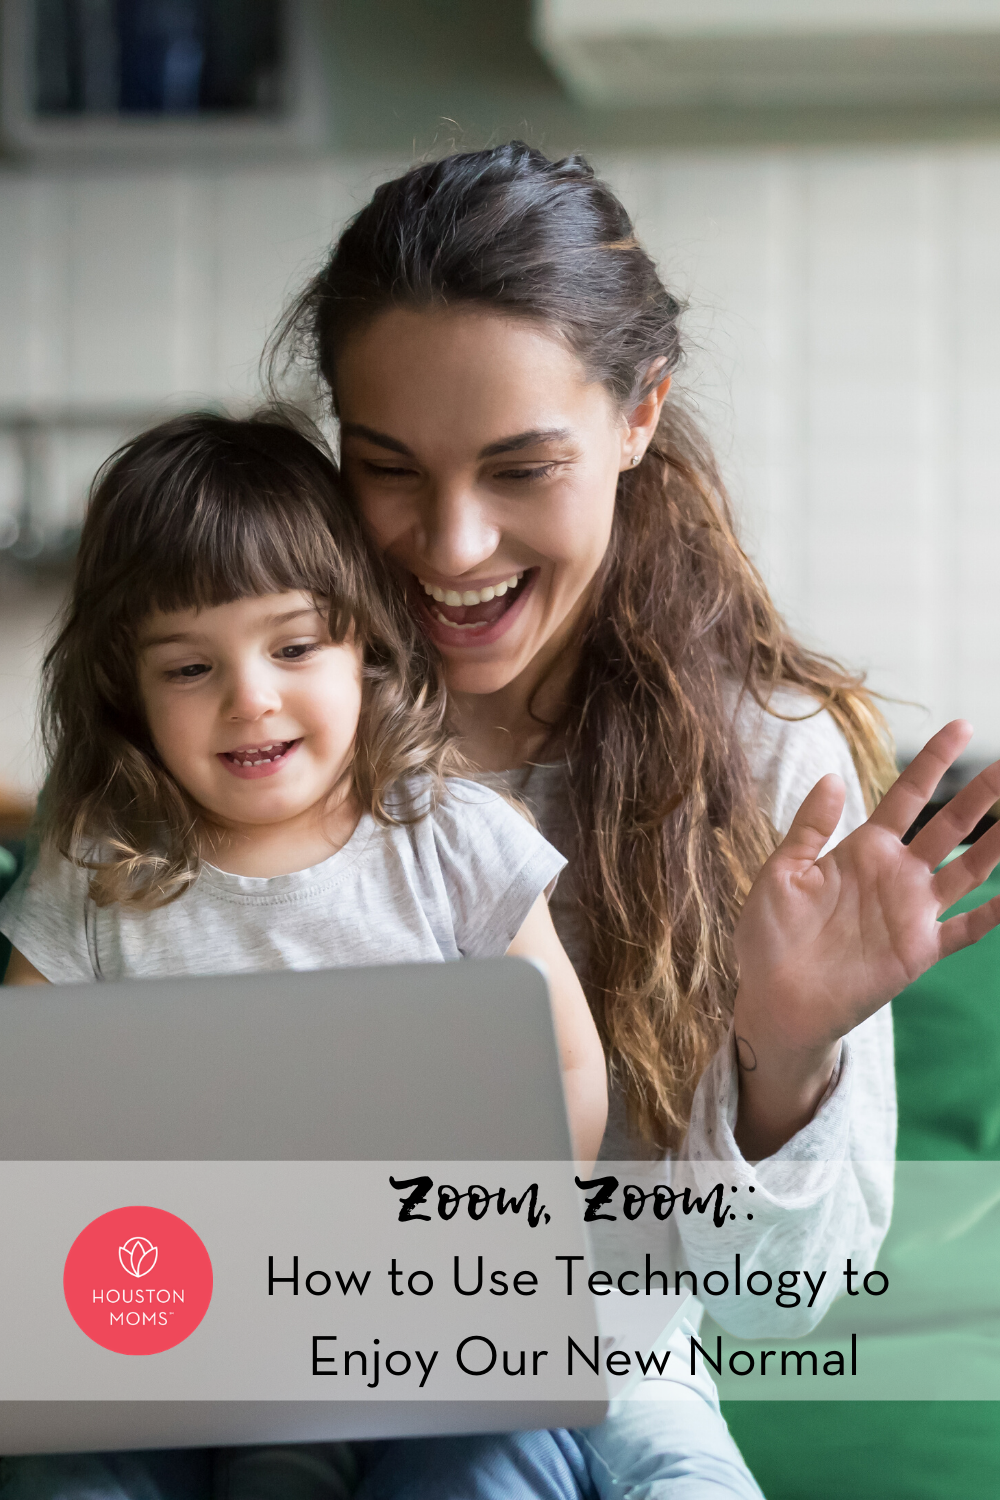 "Houston Moms ""Zoom, Zoom:: How to Use Technology to Enjoy Our New Normal"" #houstonmoms #houstonmomsblog #momsaroundhouston"